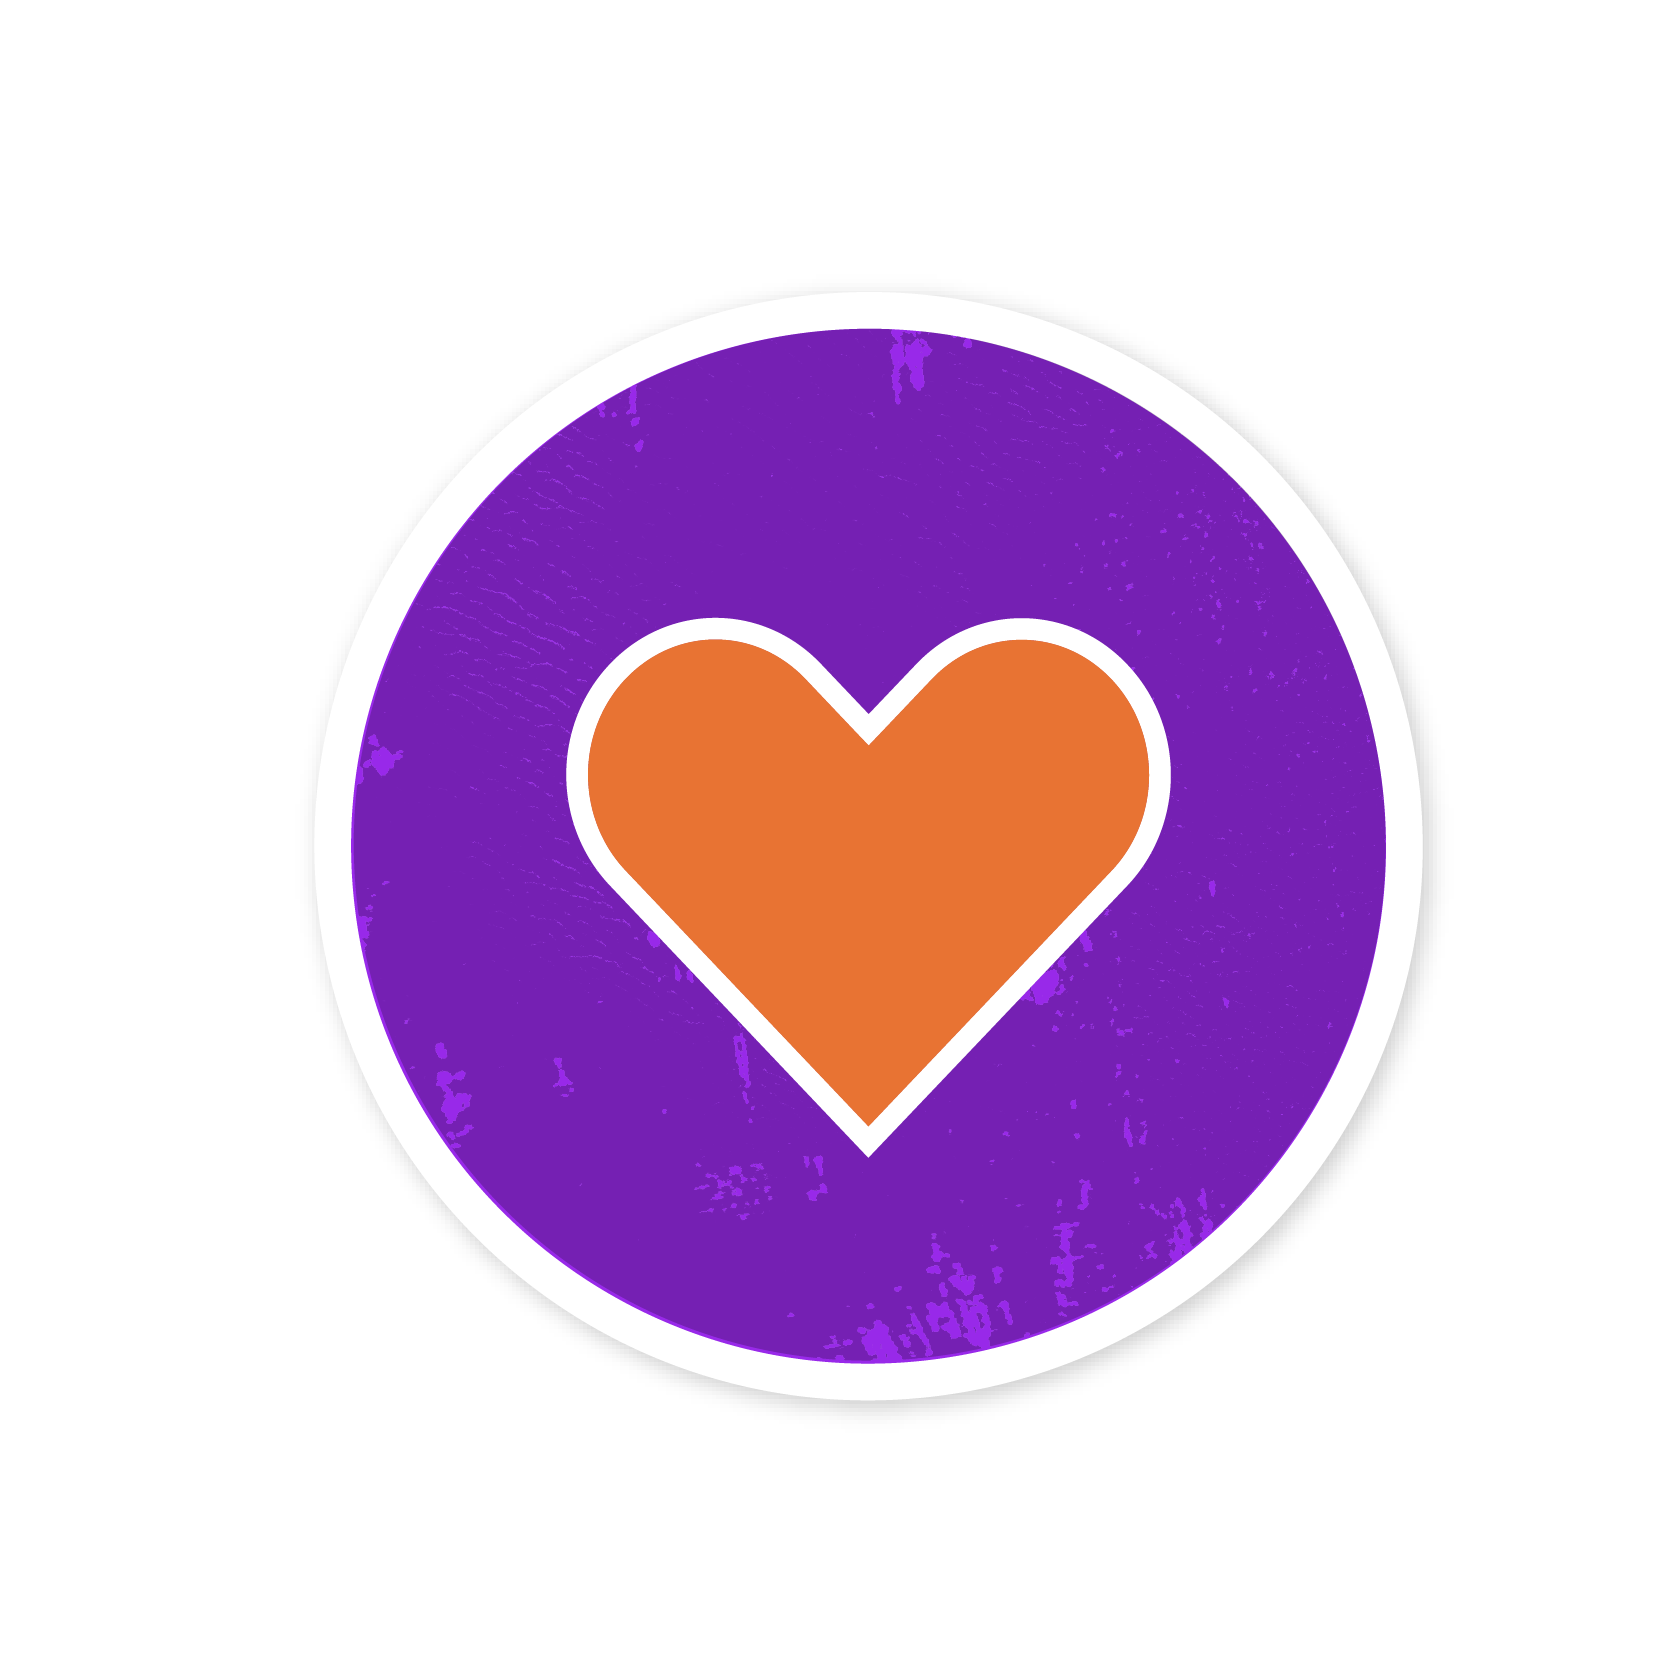 A sticker with a heart